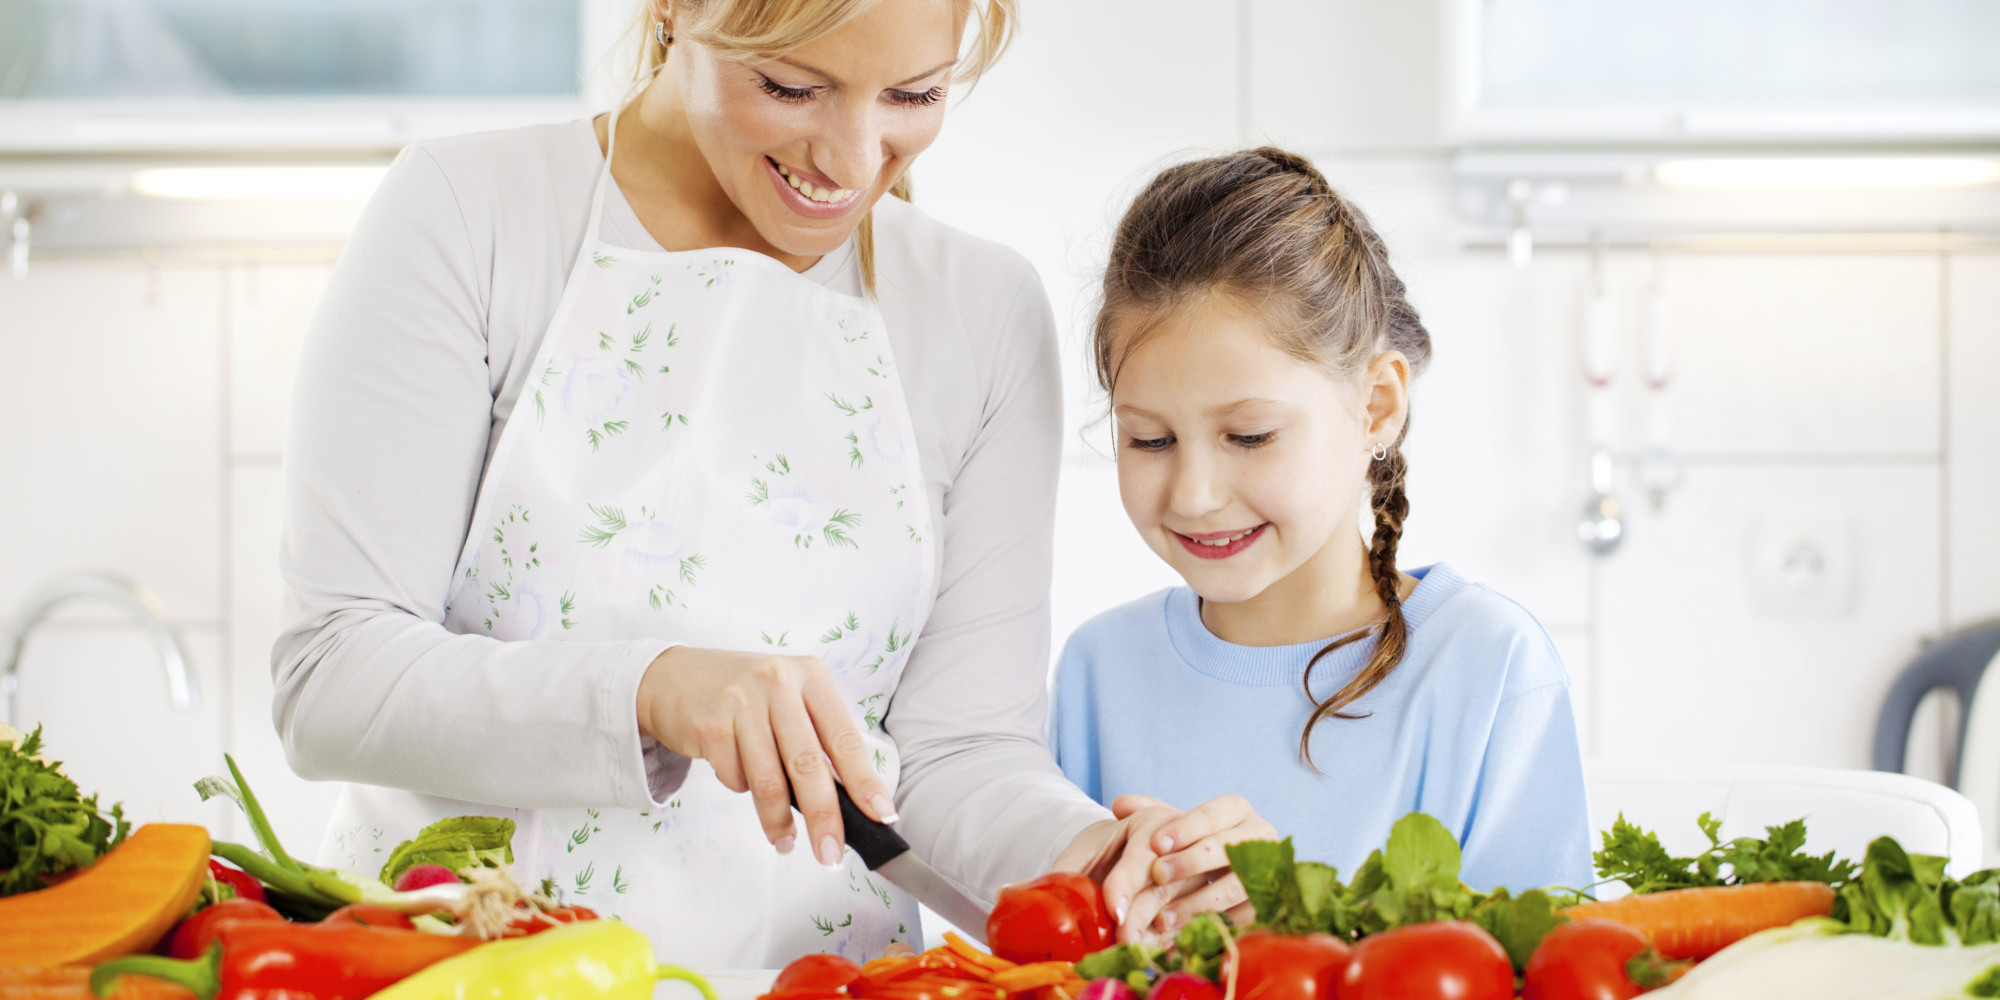 4 Ways To Instill Healthy Eating Habits In Kids